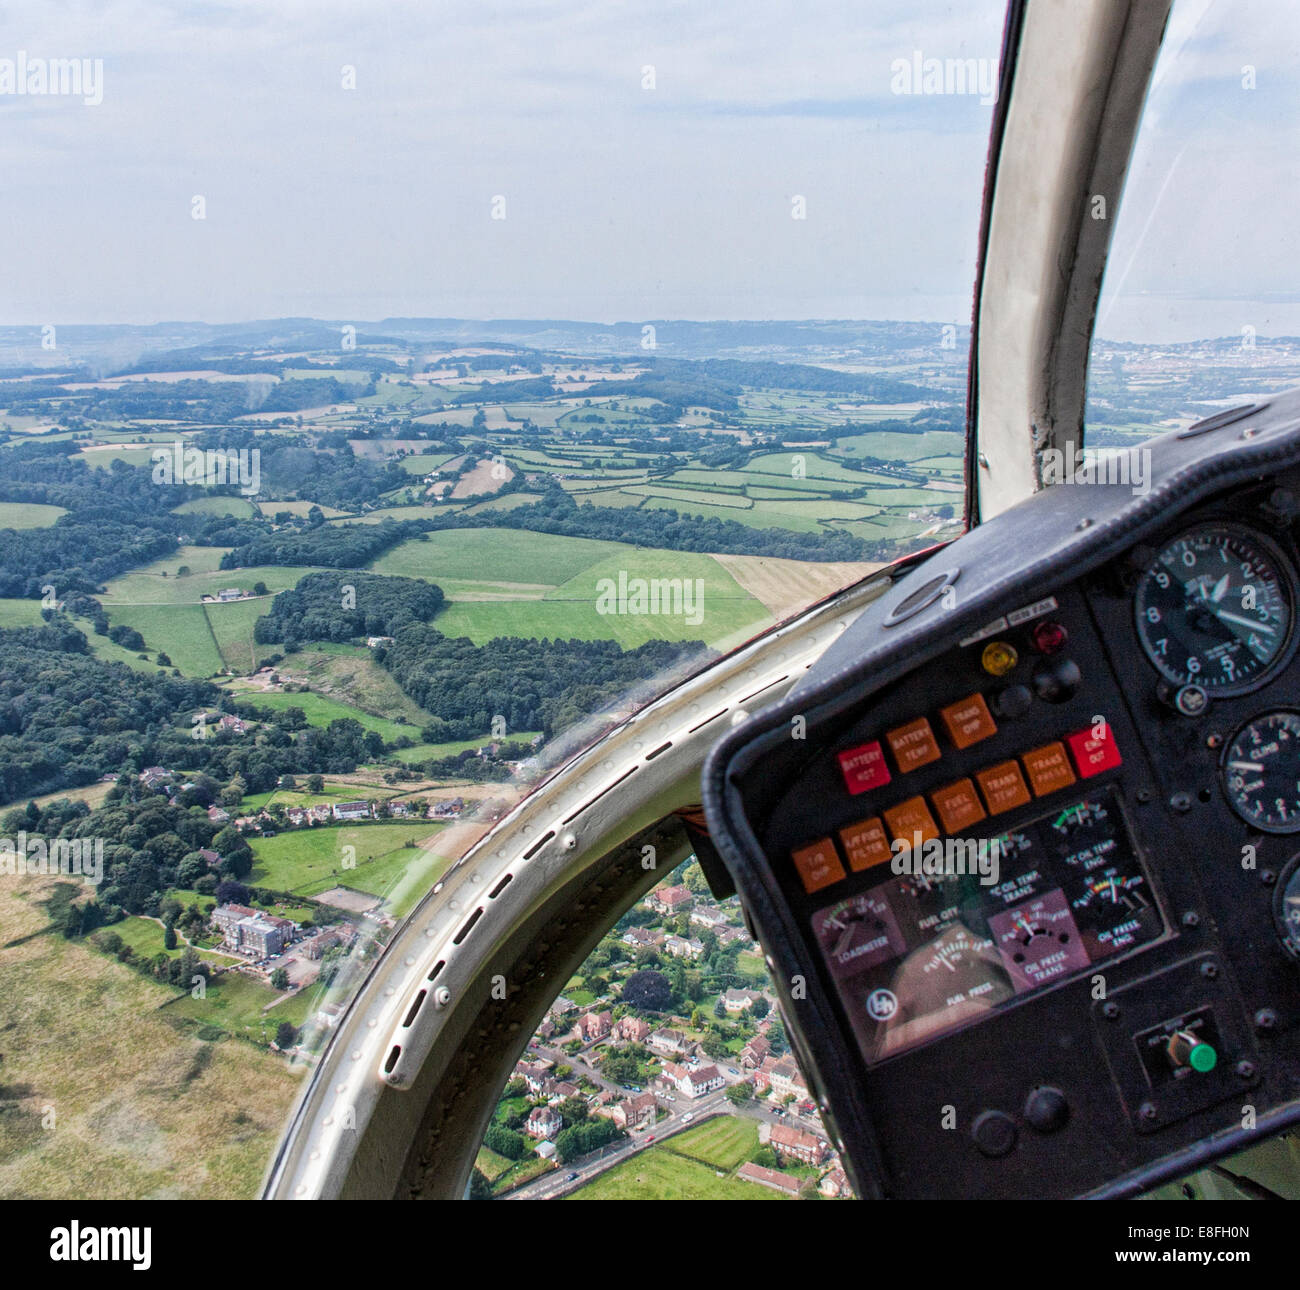 Rural landscape from inside a helicopter, England, UK - Stock Image